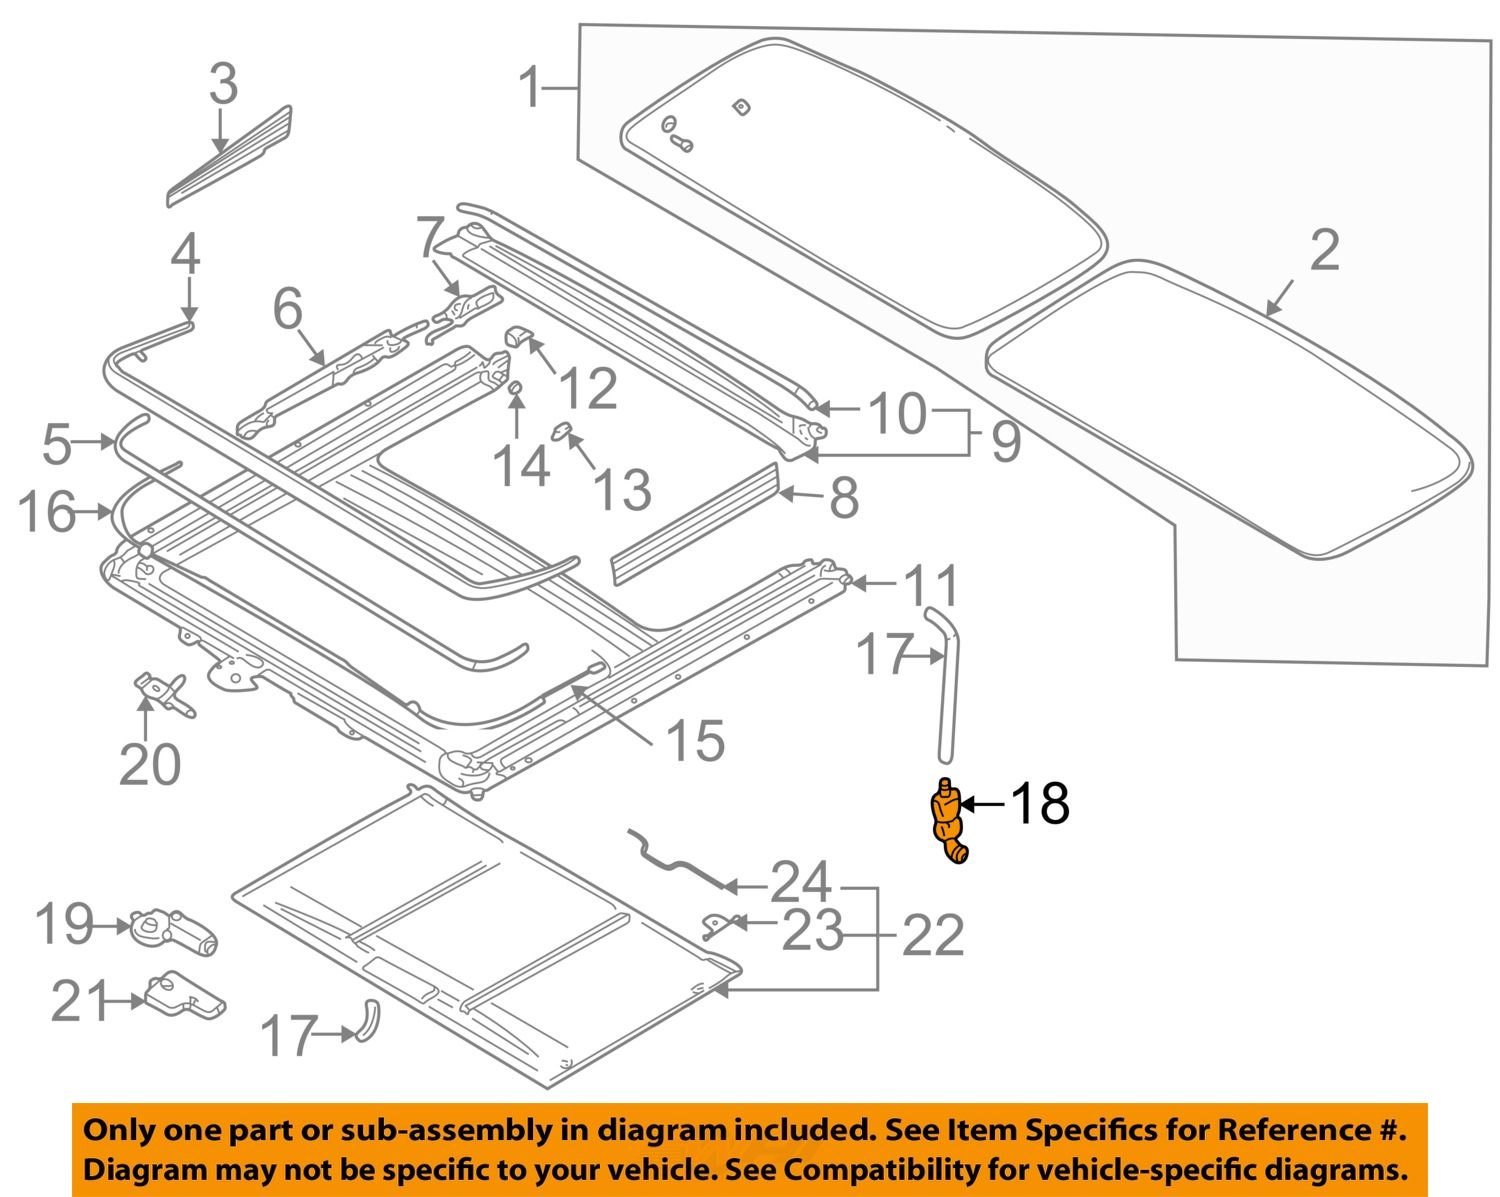 Ford F150 Sunroof Switch Wiring Electrical Diagrams 2004 Cadillac Diagram Xc90 Data U2022 Transit